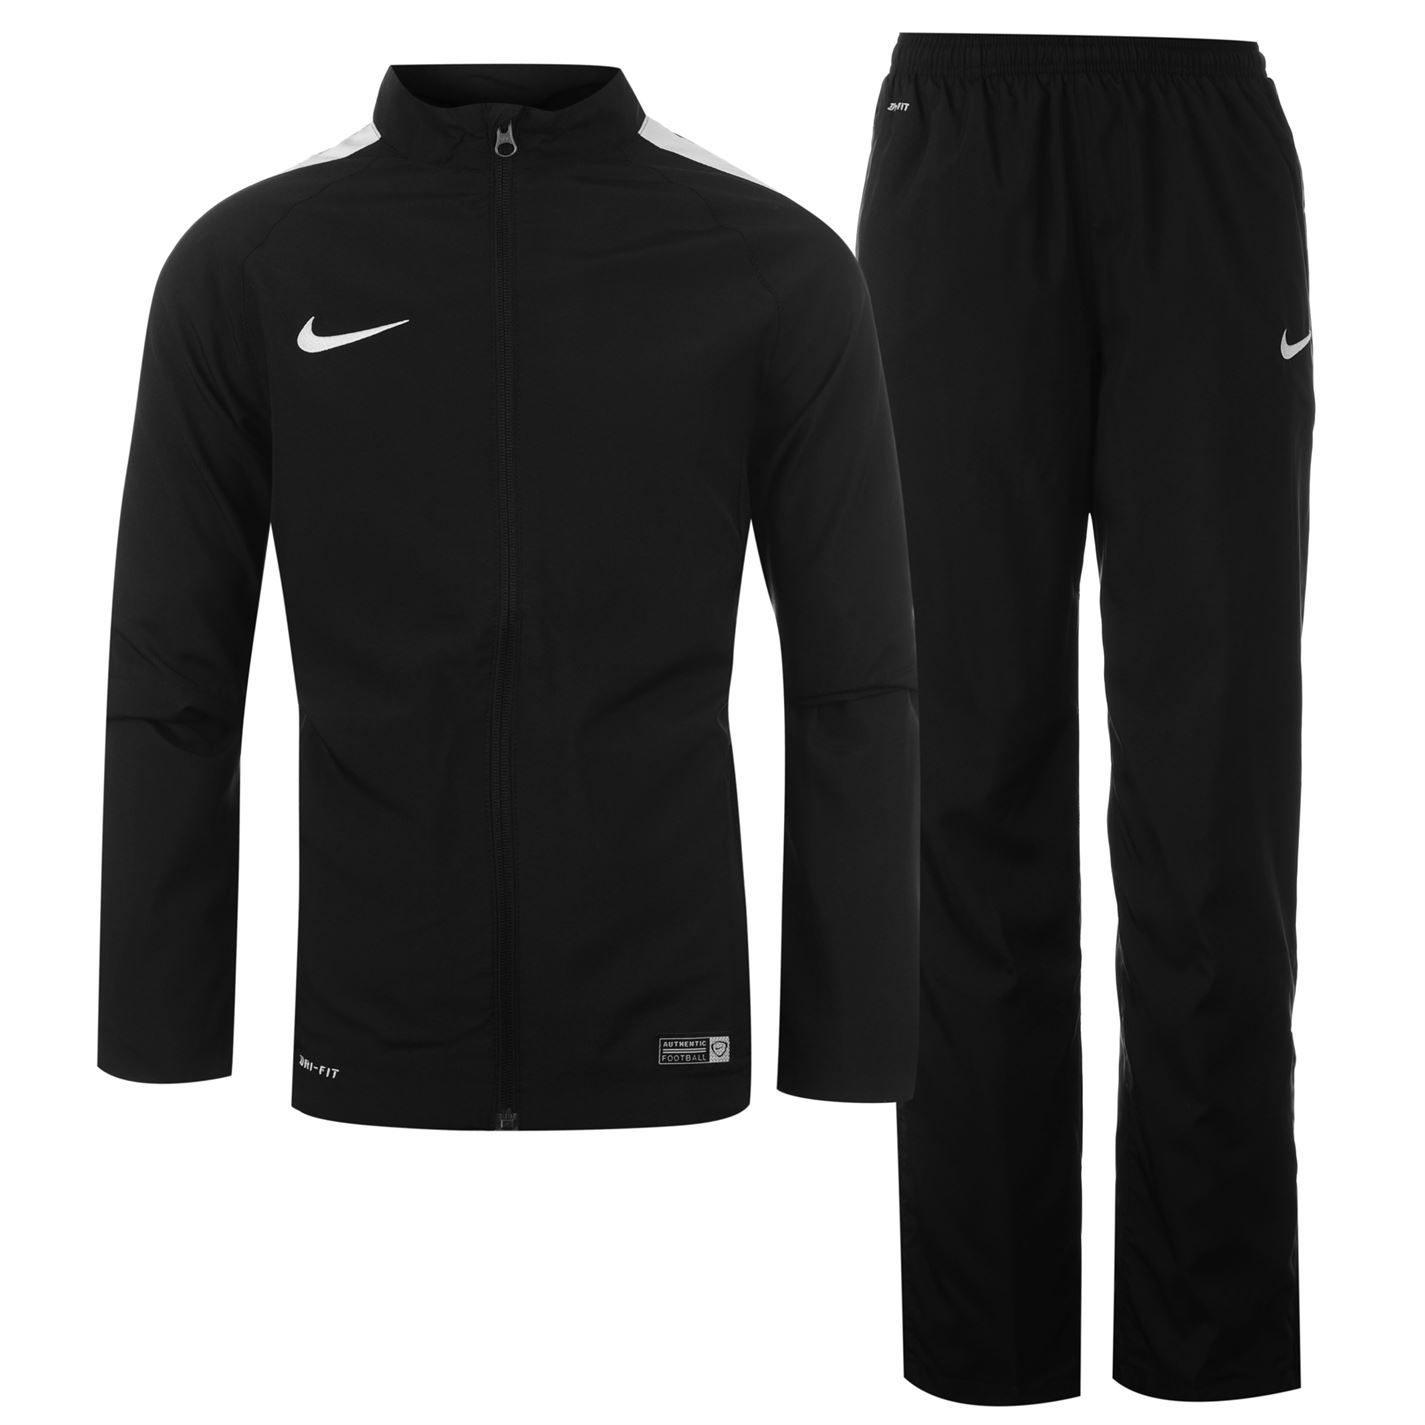 View all kids clothing Ideal for P.E., training or just lounging; we have an extensive range of kids tracksuit bottoms. Choose from skinny track pants, joggers, sweatpants and tracksuit bottoms for whatever your activity of choice is. You'll find huge bargains and discount prices on brand such as Nike, Puma, Under Armour, Slazenger and adidas.